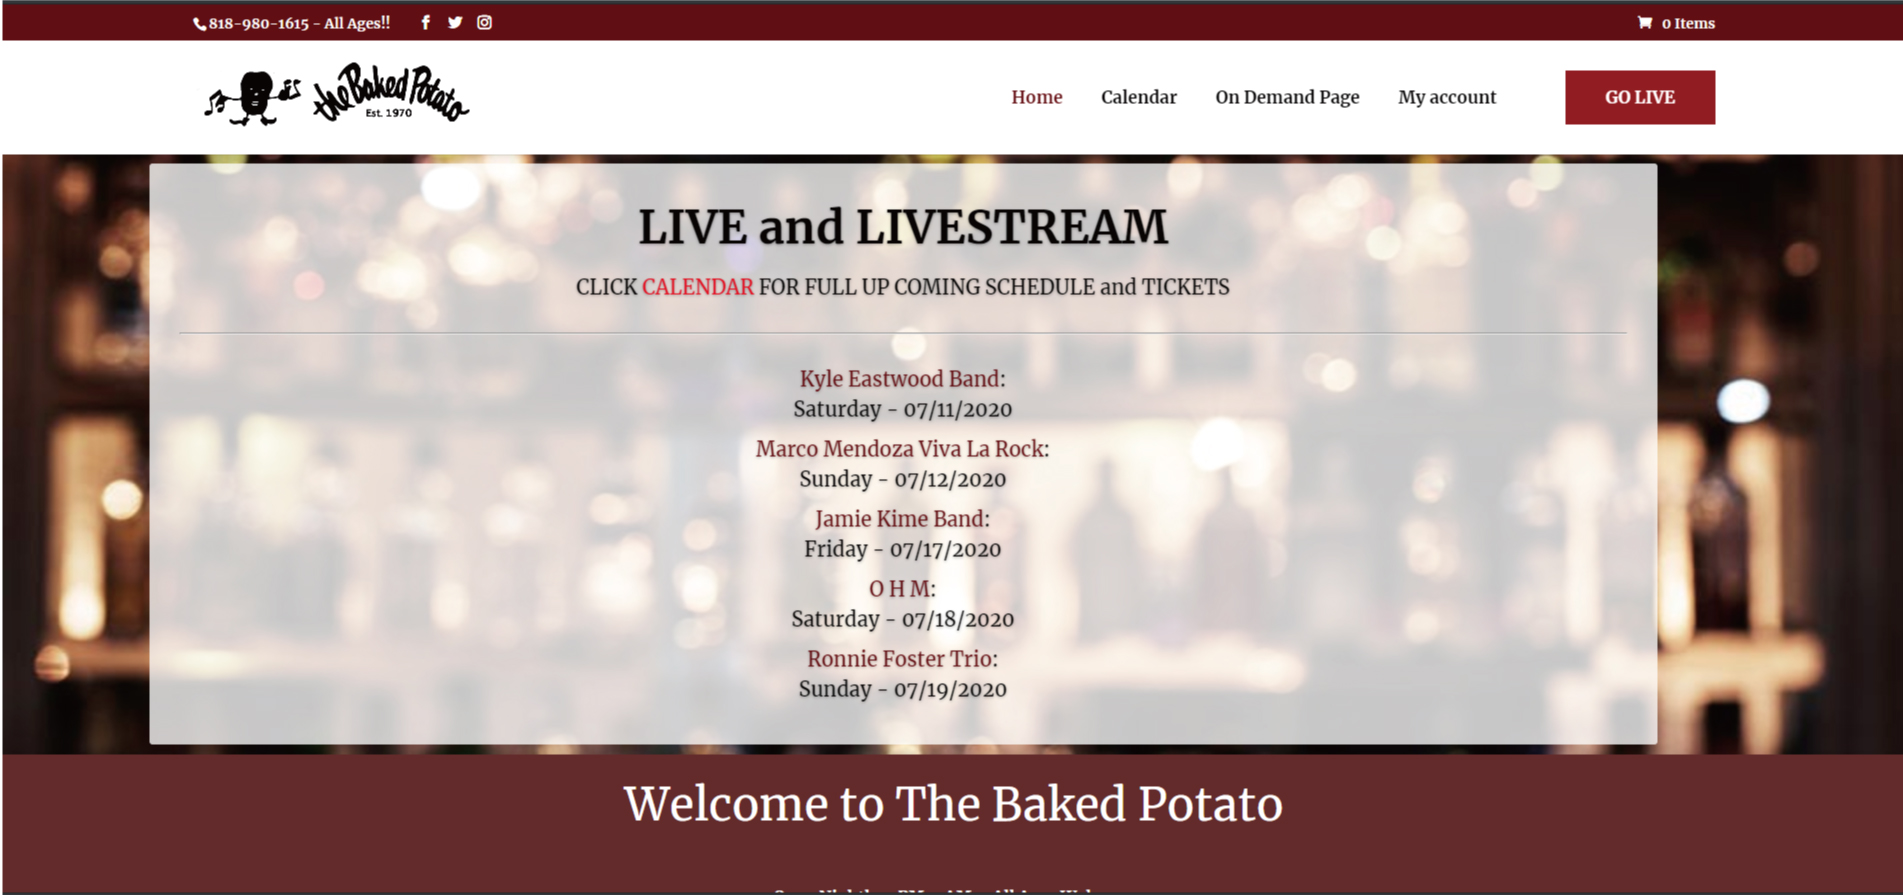 Toshi Yanagi| Jamie Kime Band The Baked Potato LIVE|LIVESTREAMで見るぞ、と。もしくはオンデマンド。